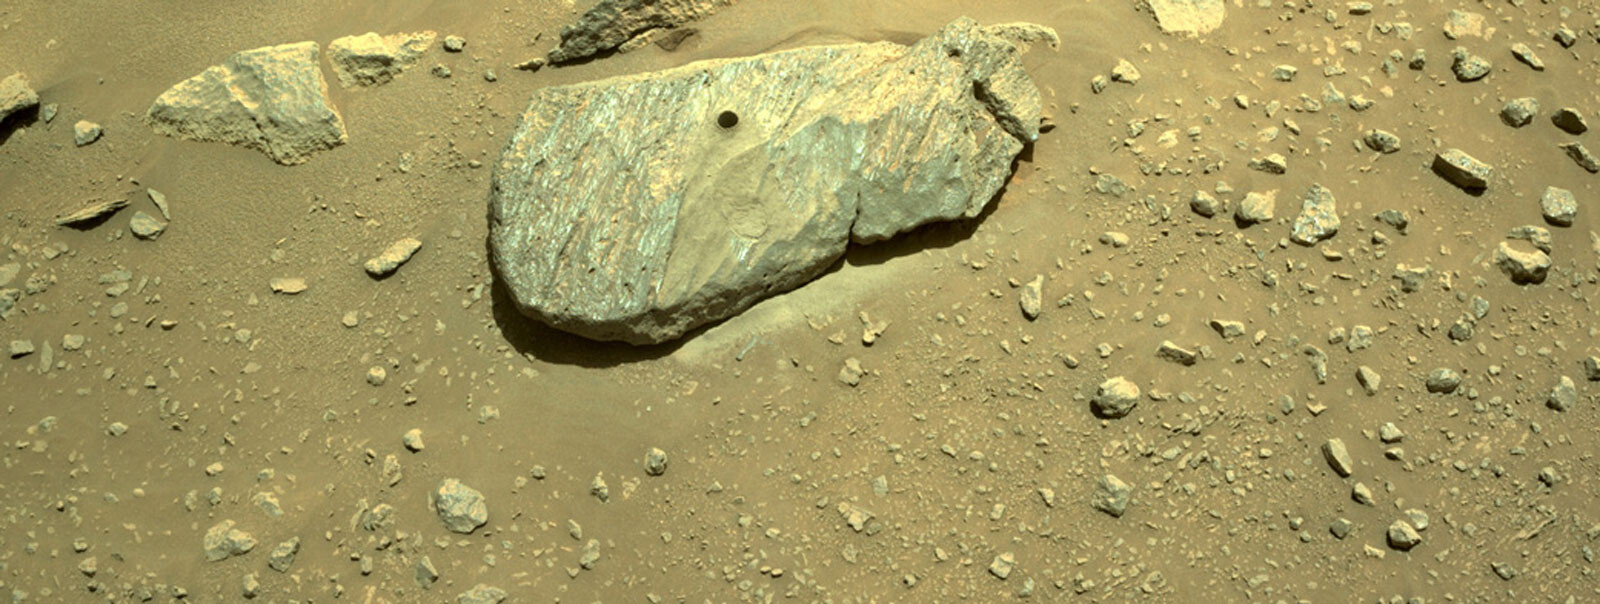 Perseverance rover successfully cores its first rock on Mars